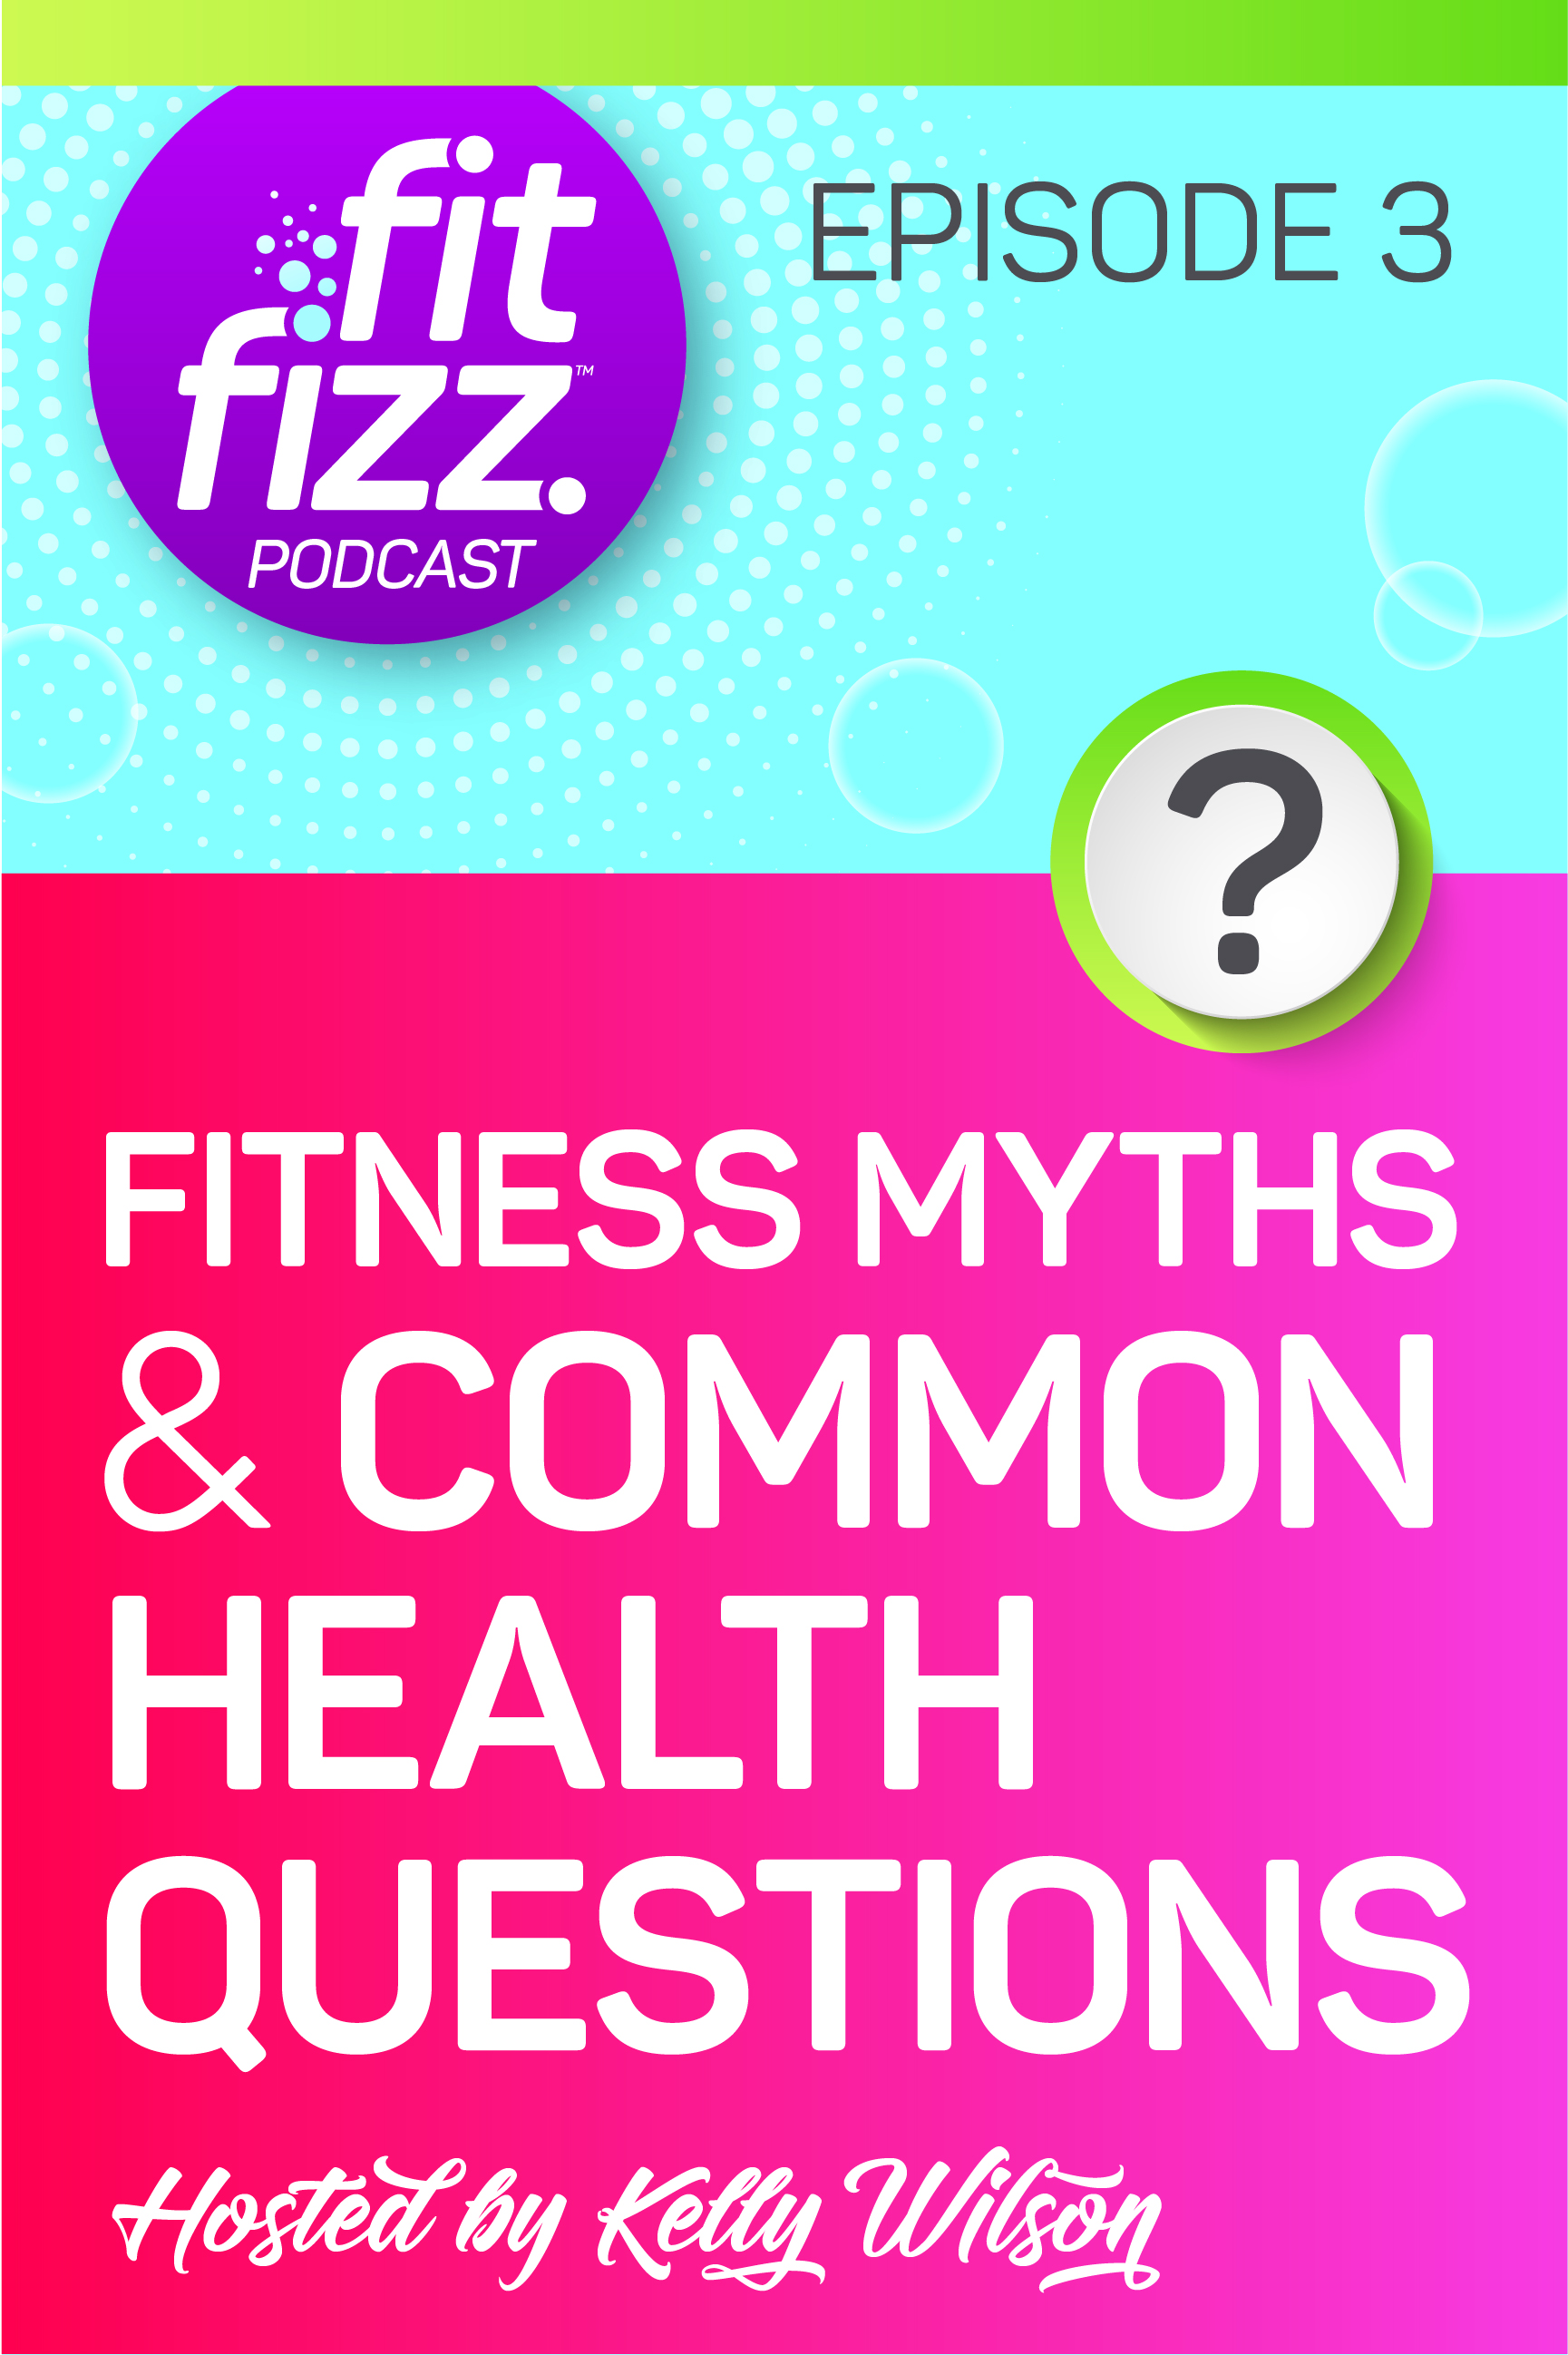 Podcast Episode 3, Fitness Myths and Common Health Questions. Are carbs bad? Which running shoes are best? How much water should I drink? Find out all of the answers and more on this episode of the FitFizz Podcast. #fitness #water #carbs #health #fitfizz